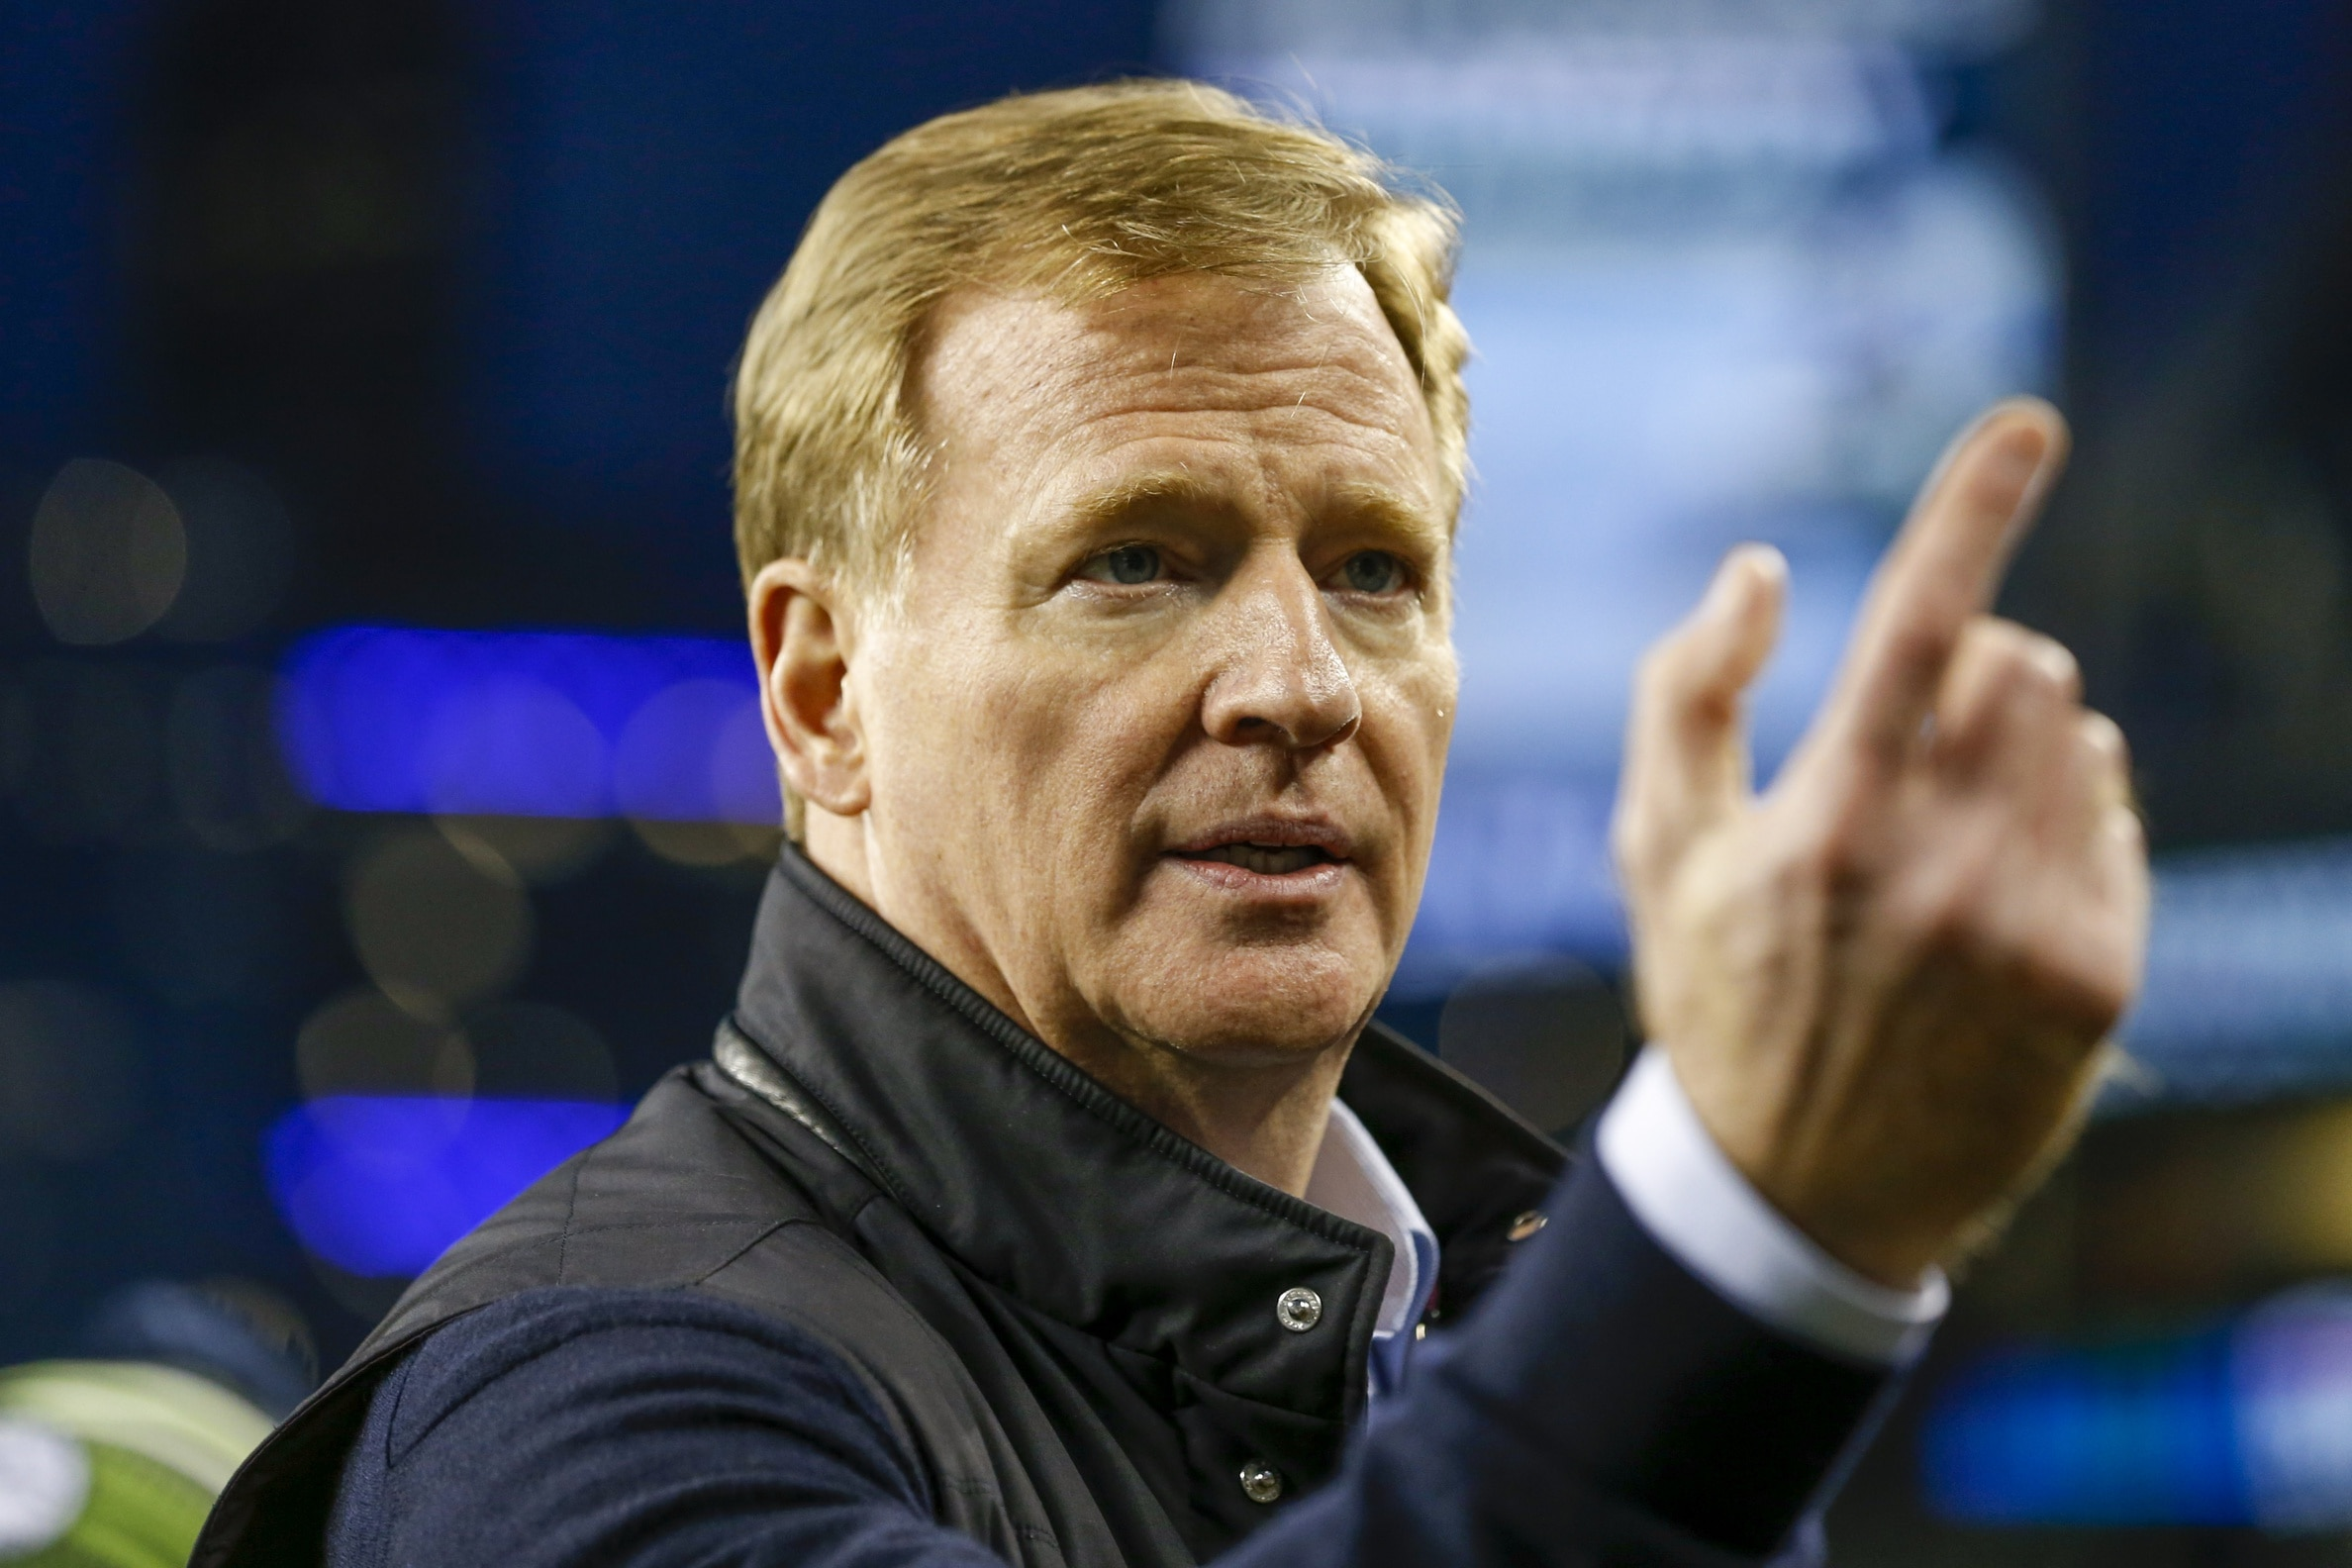 Roger Goodell Patriots allegations